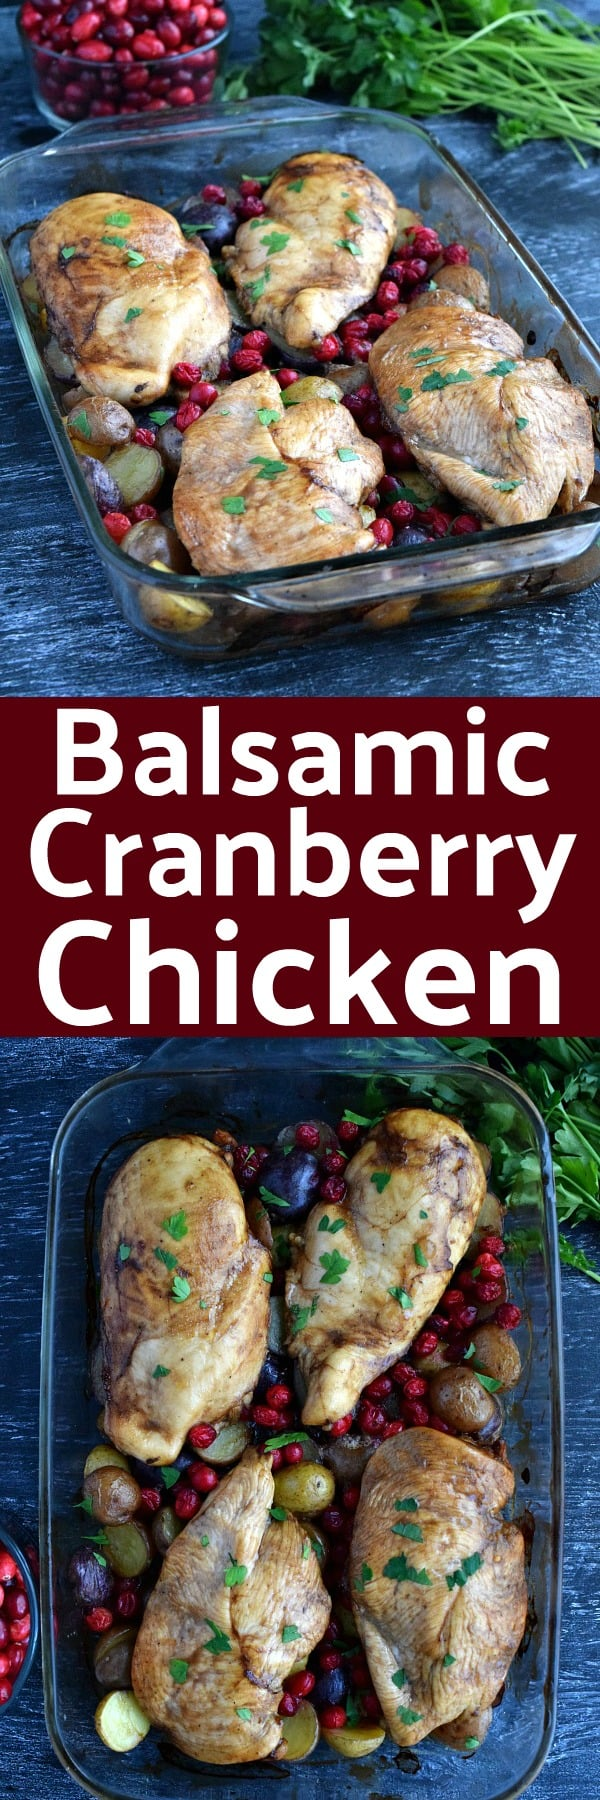 Balsamic Cranberry Chicken Pinterest Pin #chicken #cranberry #dinnerideas